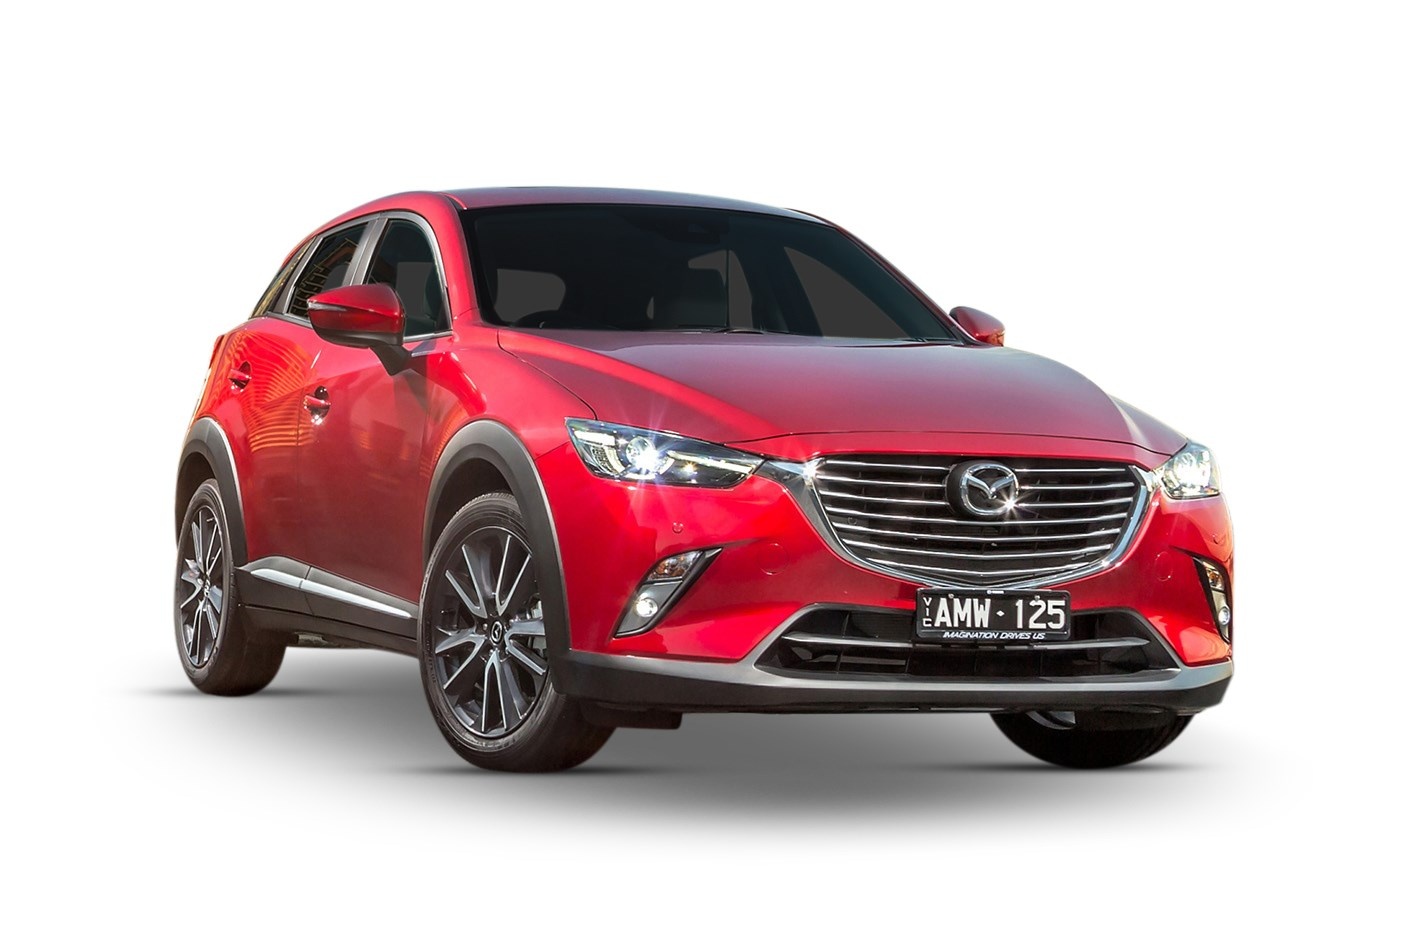 2017 mazda cx 3 akari awd review caradvice autos post. Black Bedroom Furniture Sets. Home Design Ideas